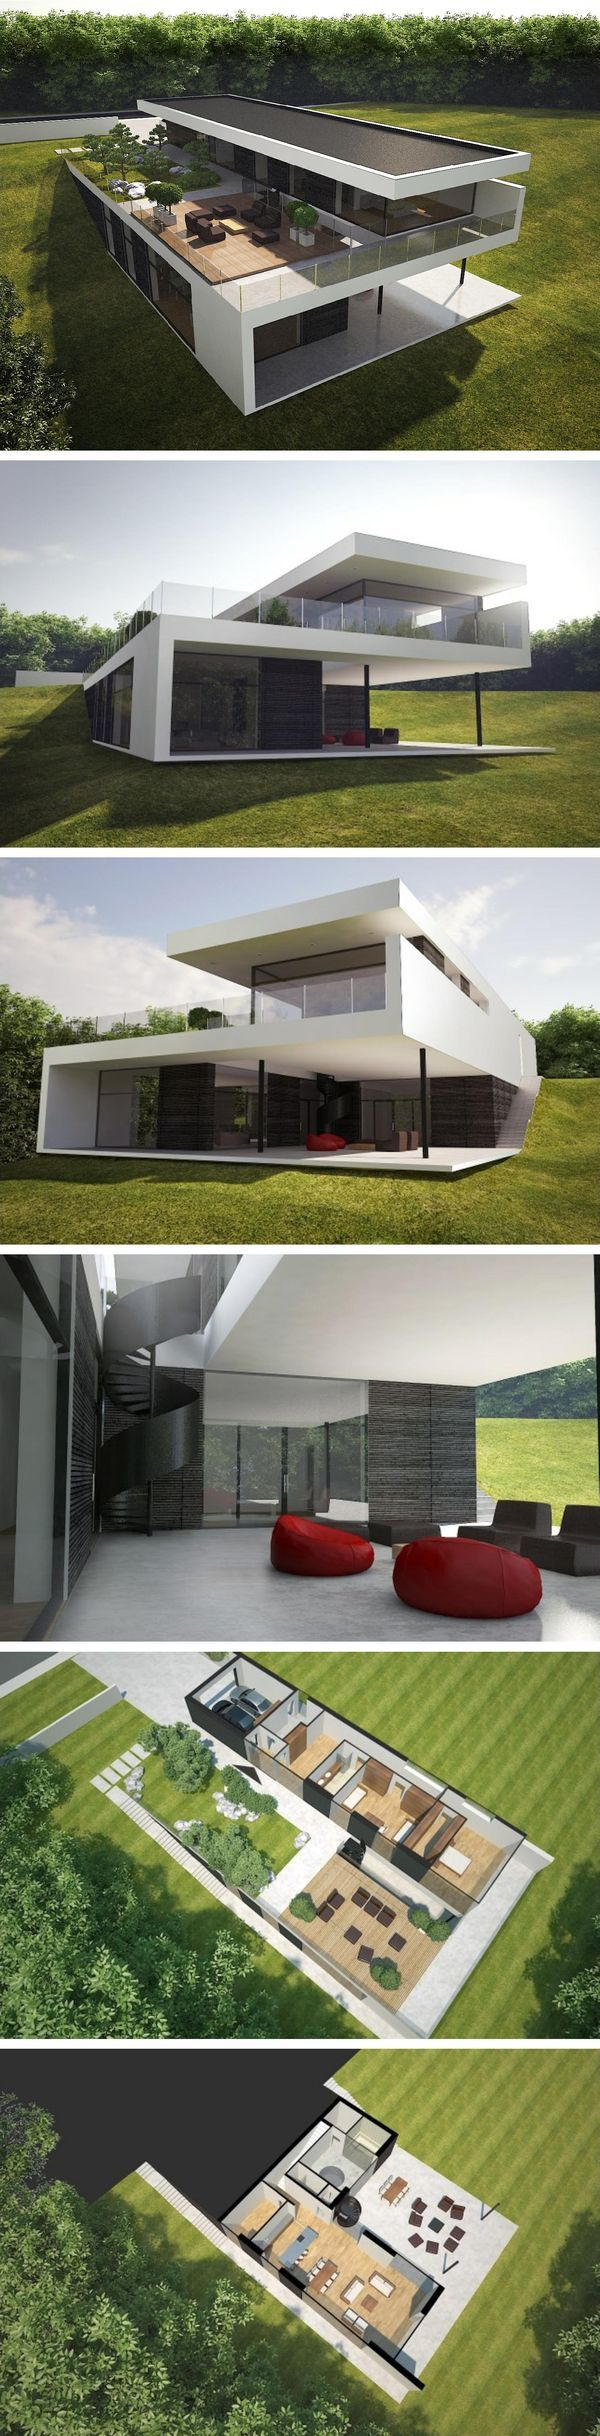 9ffc55a607f330459a50c4341761c46e.jpg 600×2,436 pixels ¿Who Else Wants Simple Step-By-Step Plans To Design And Build A Container Home From Scratch? http://build-acontainerhome.blogspot.com?prod=jtNXchHd